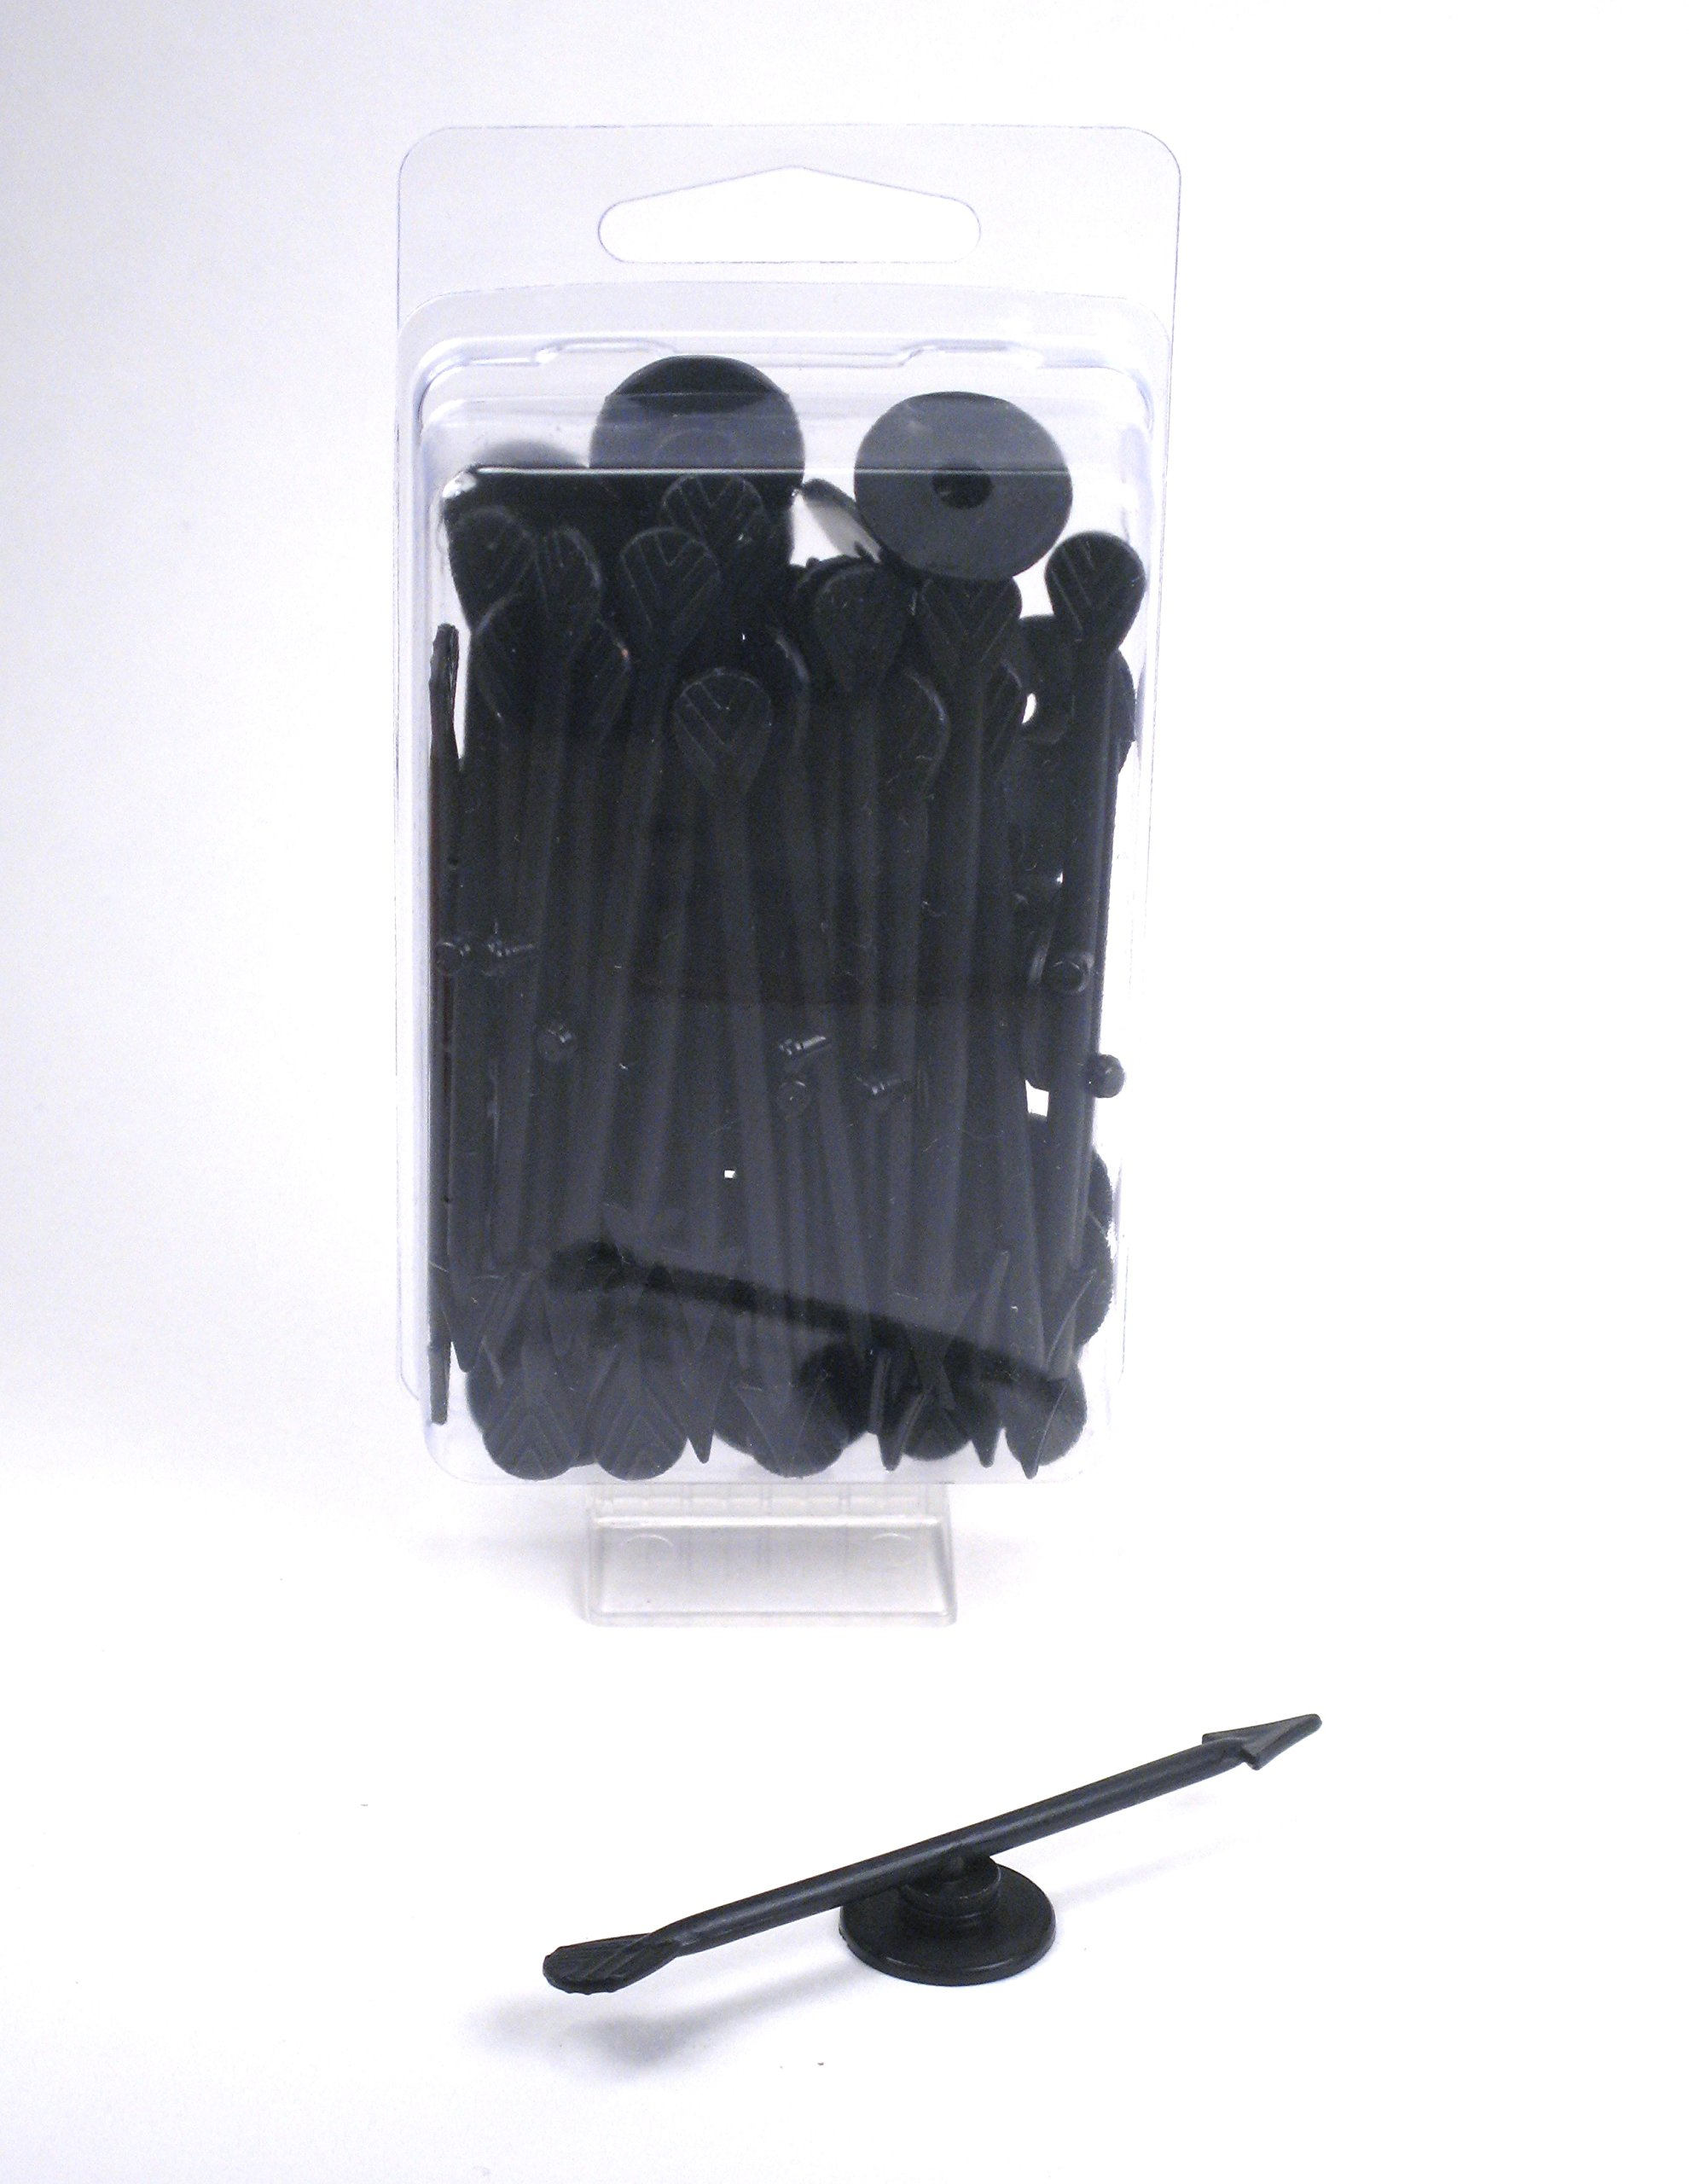 Board Game Arrow Spinners - 30 count pack - 7.5cm (3'') - Black by Hedral